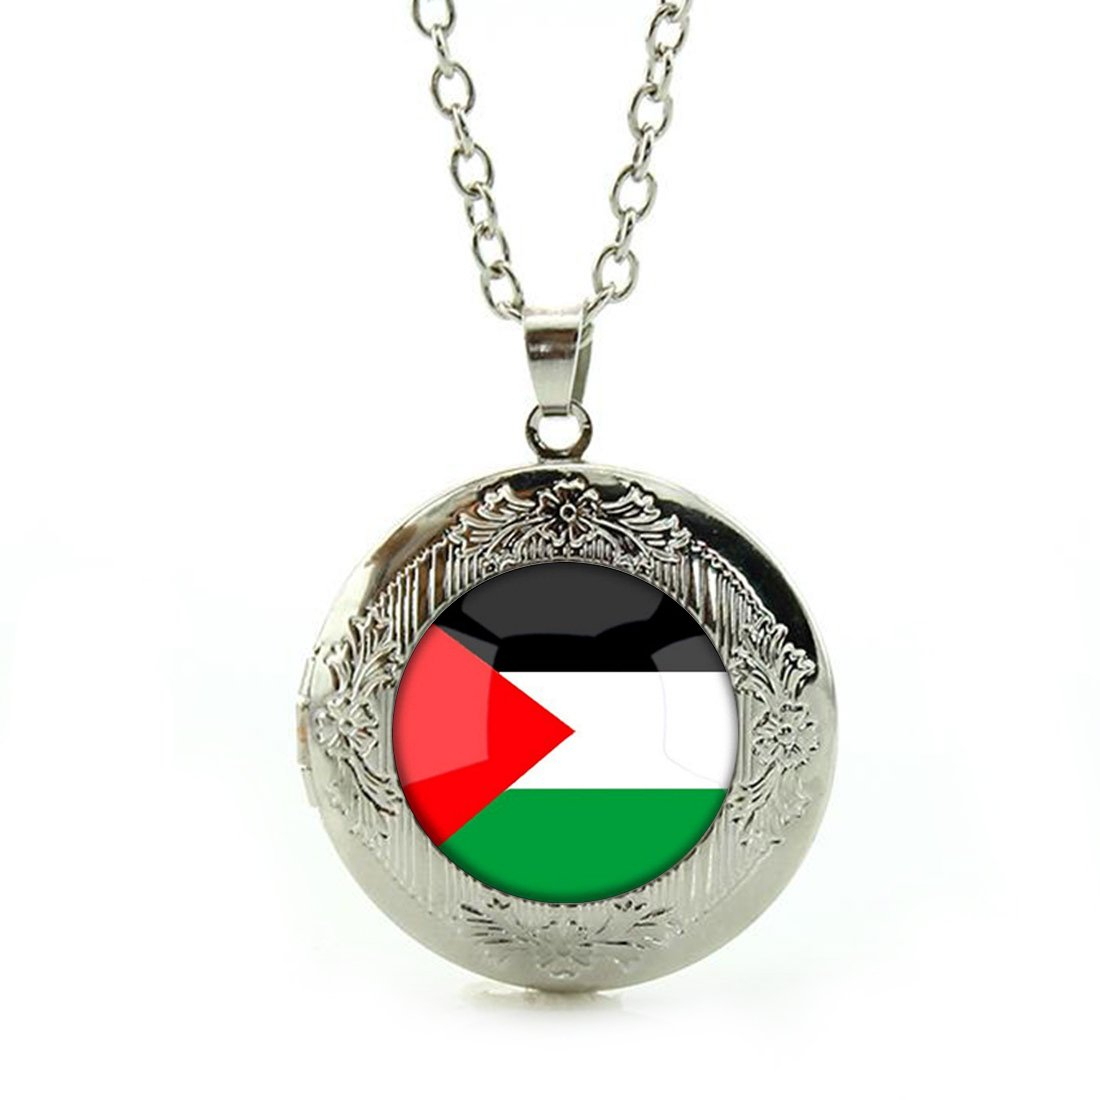 Silver Pendant The Hashemite Kingdom of Jordan National Flag Custom Design Alloy Chain Necklace